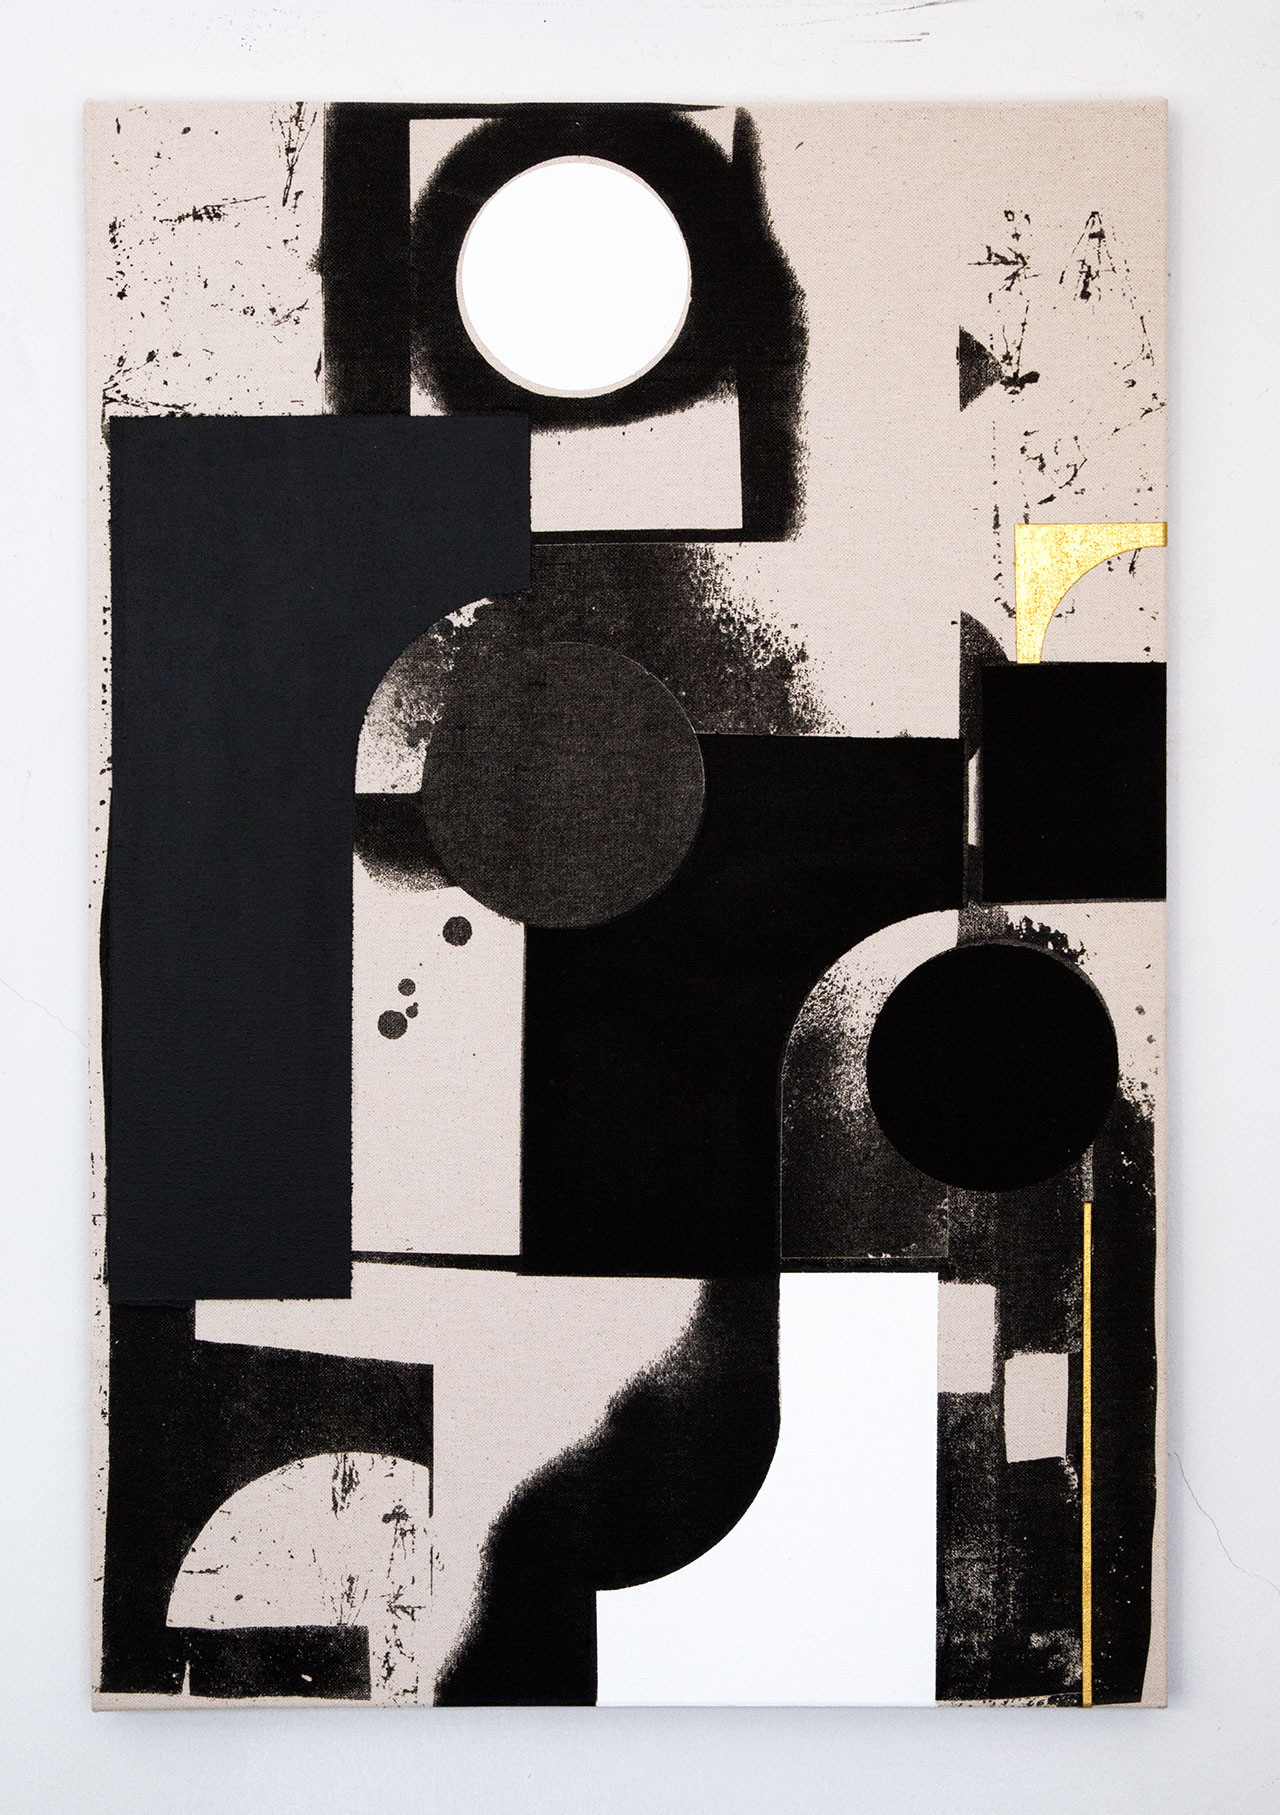 Panos Tsagaris, Under the shadow of any empty thoughtgold leaf, acrylic paint and silkscreen on canvas, 86x56 cm, 2016. Courtesy of the artist and Kalfayan Galleries, Athens-Thessaloniki.